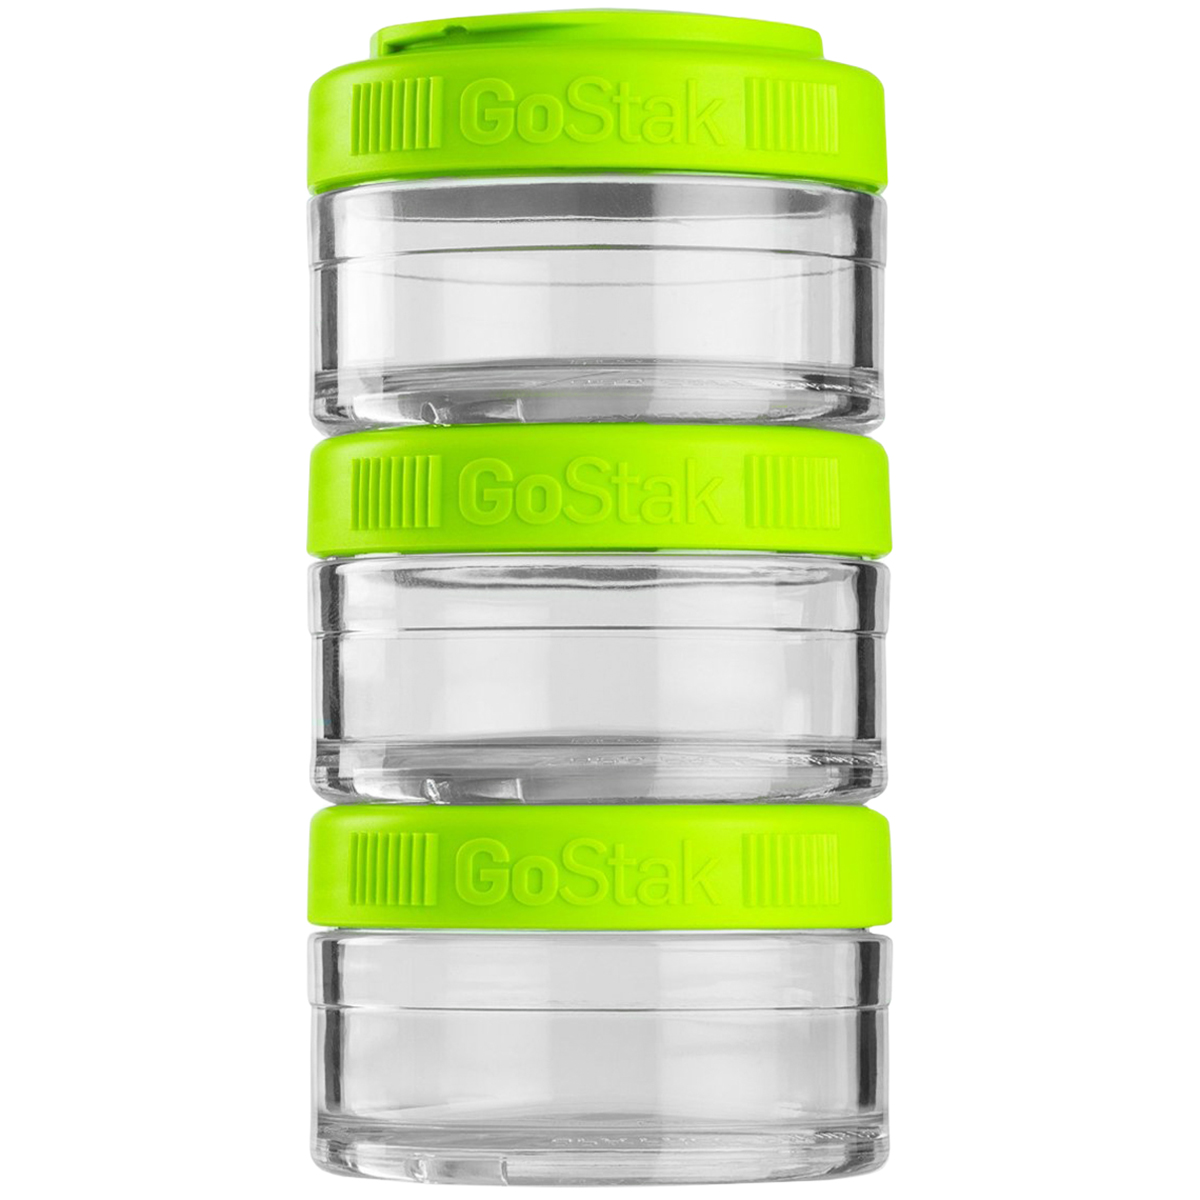 Blender Bottle GoStak 60cc 3Pak Twist n' Lock Storage Jars by Blender Bottle